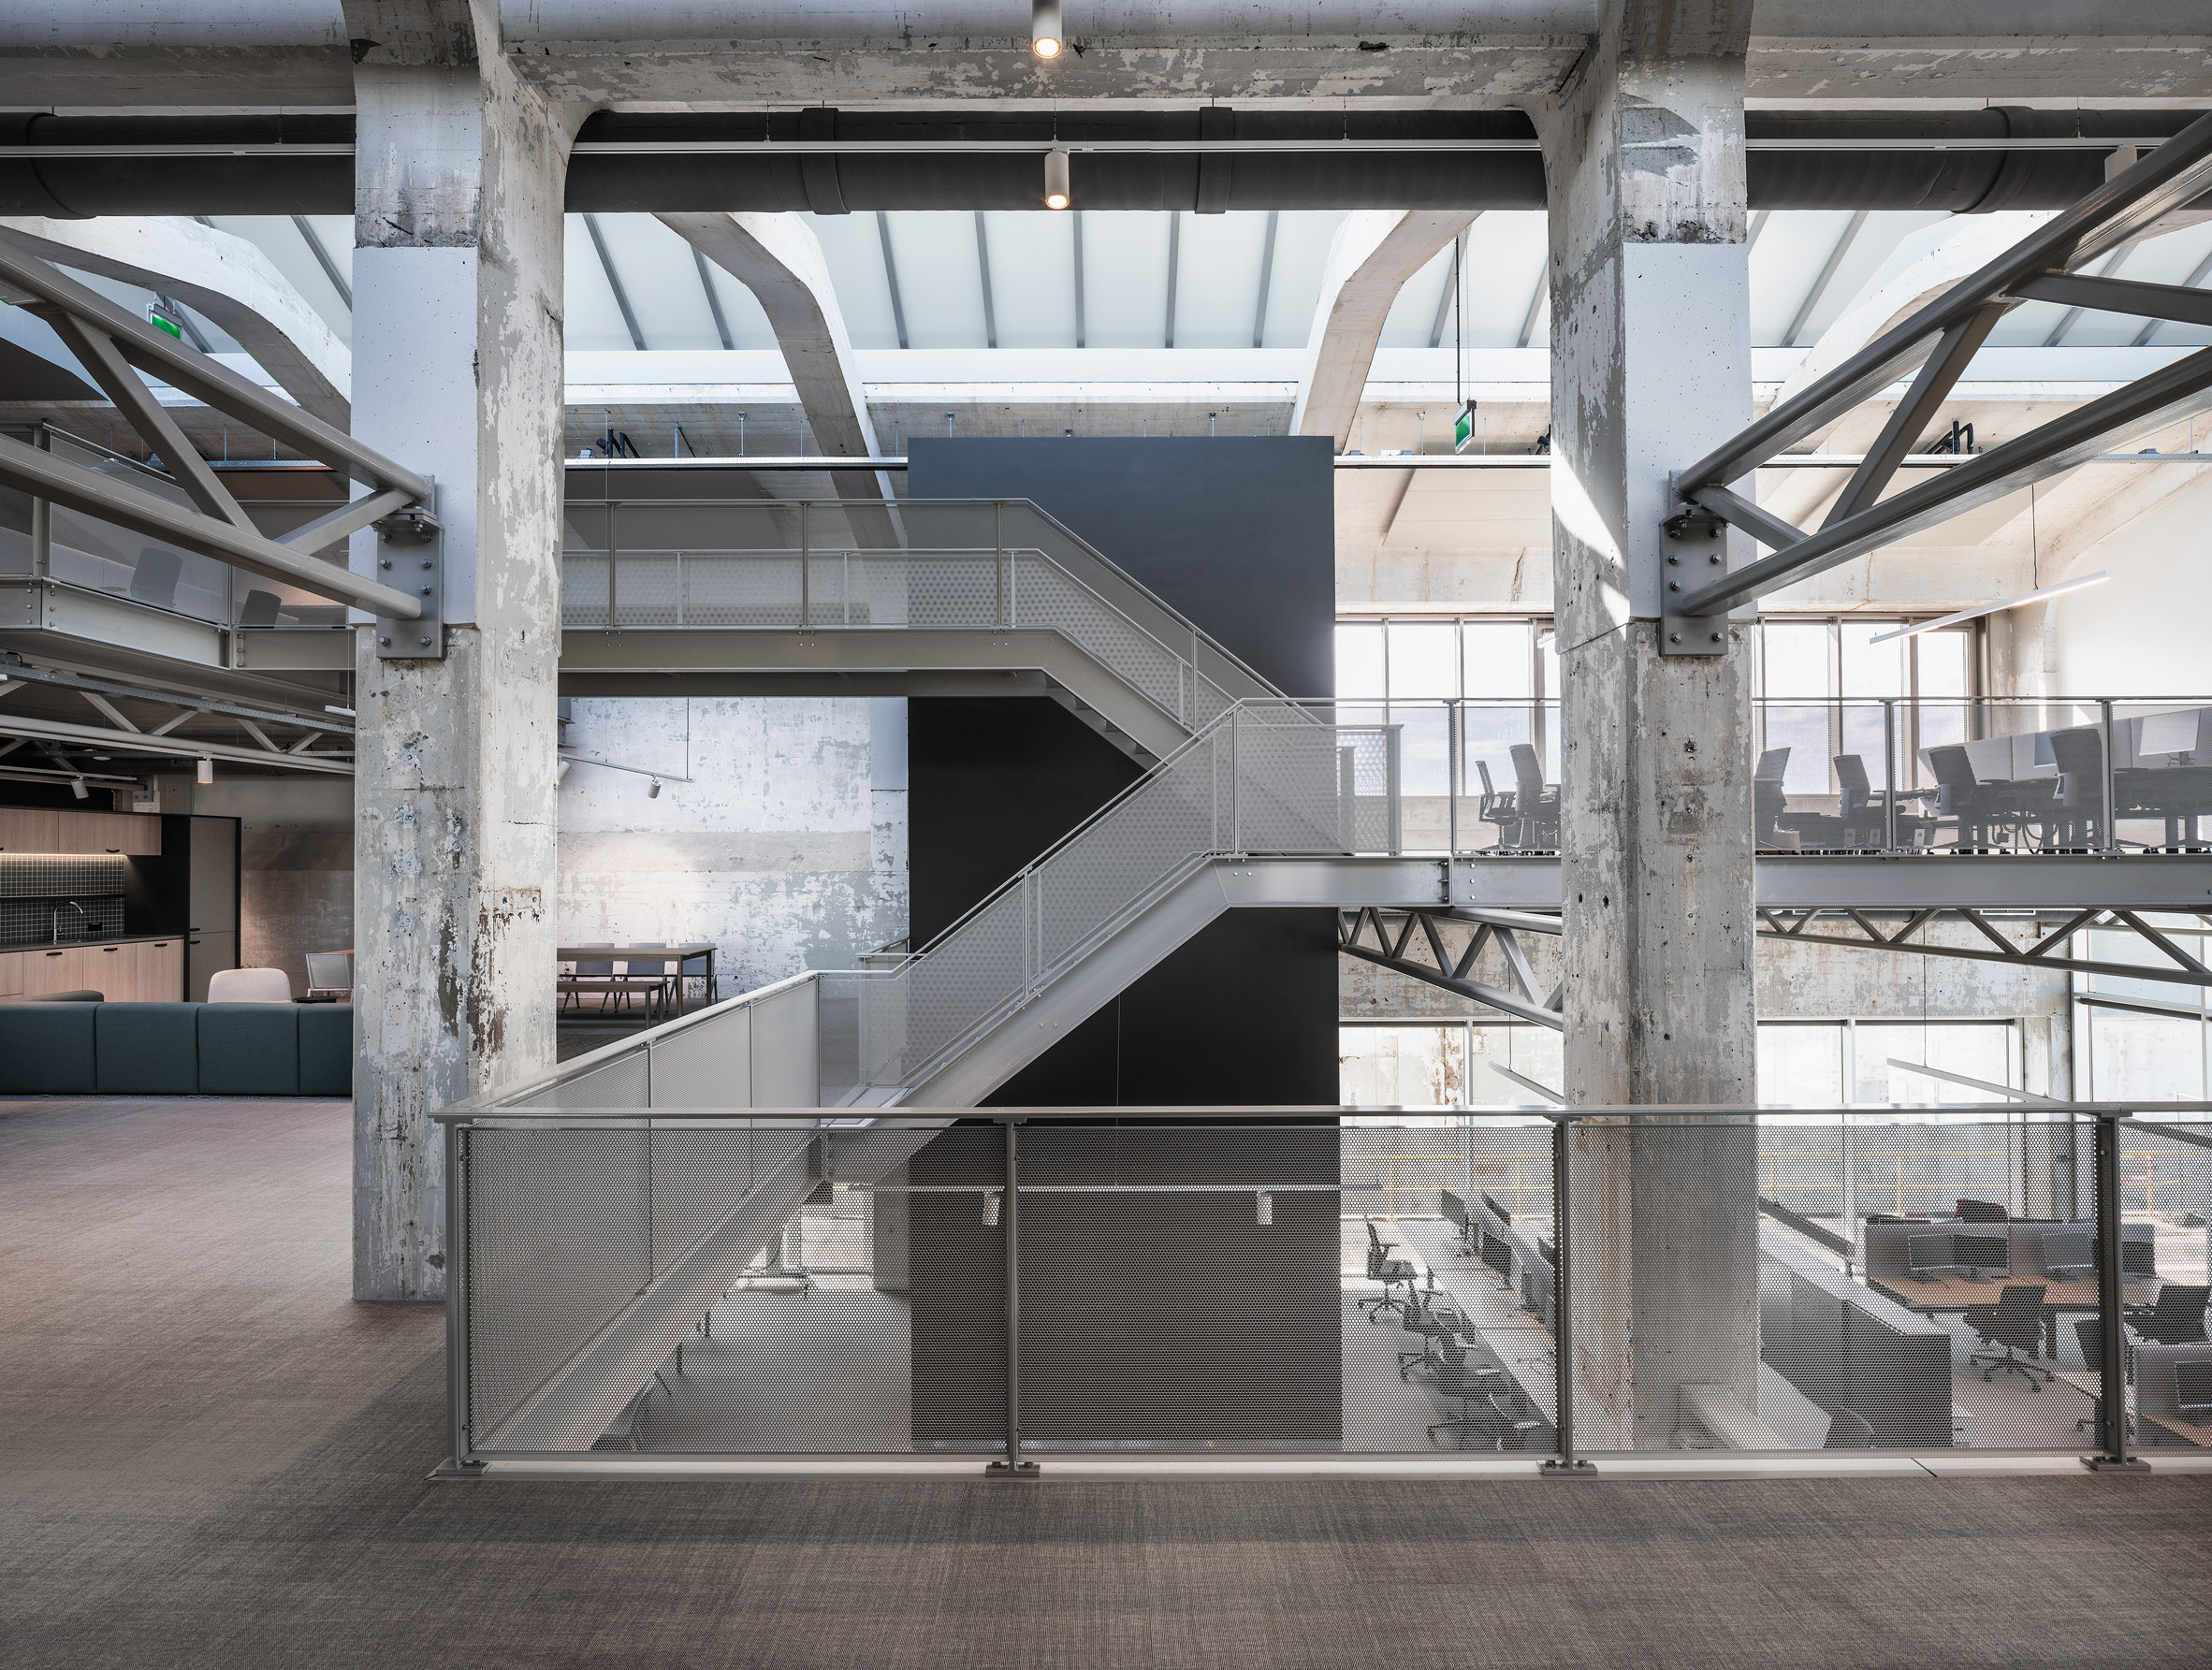 KB Building offices by HofmanDujardin and Schipper Bosch